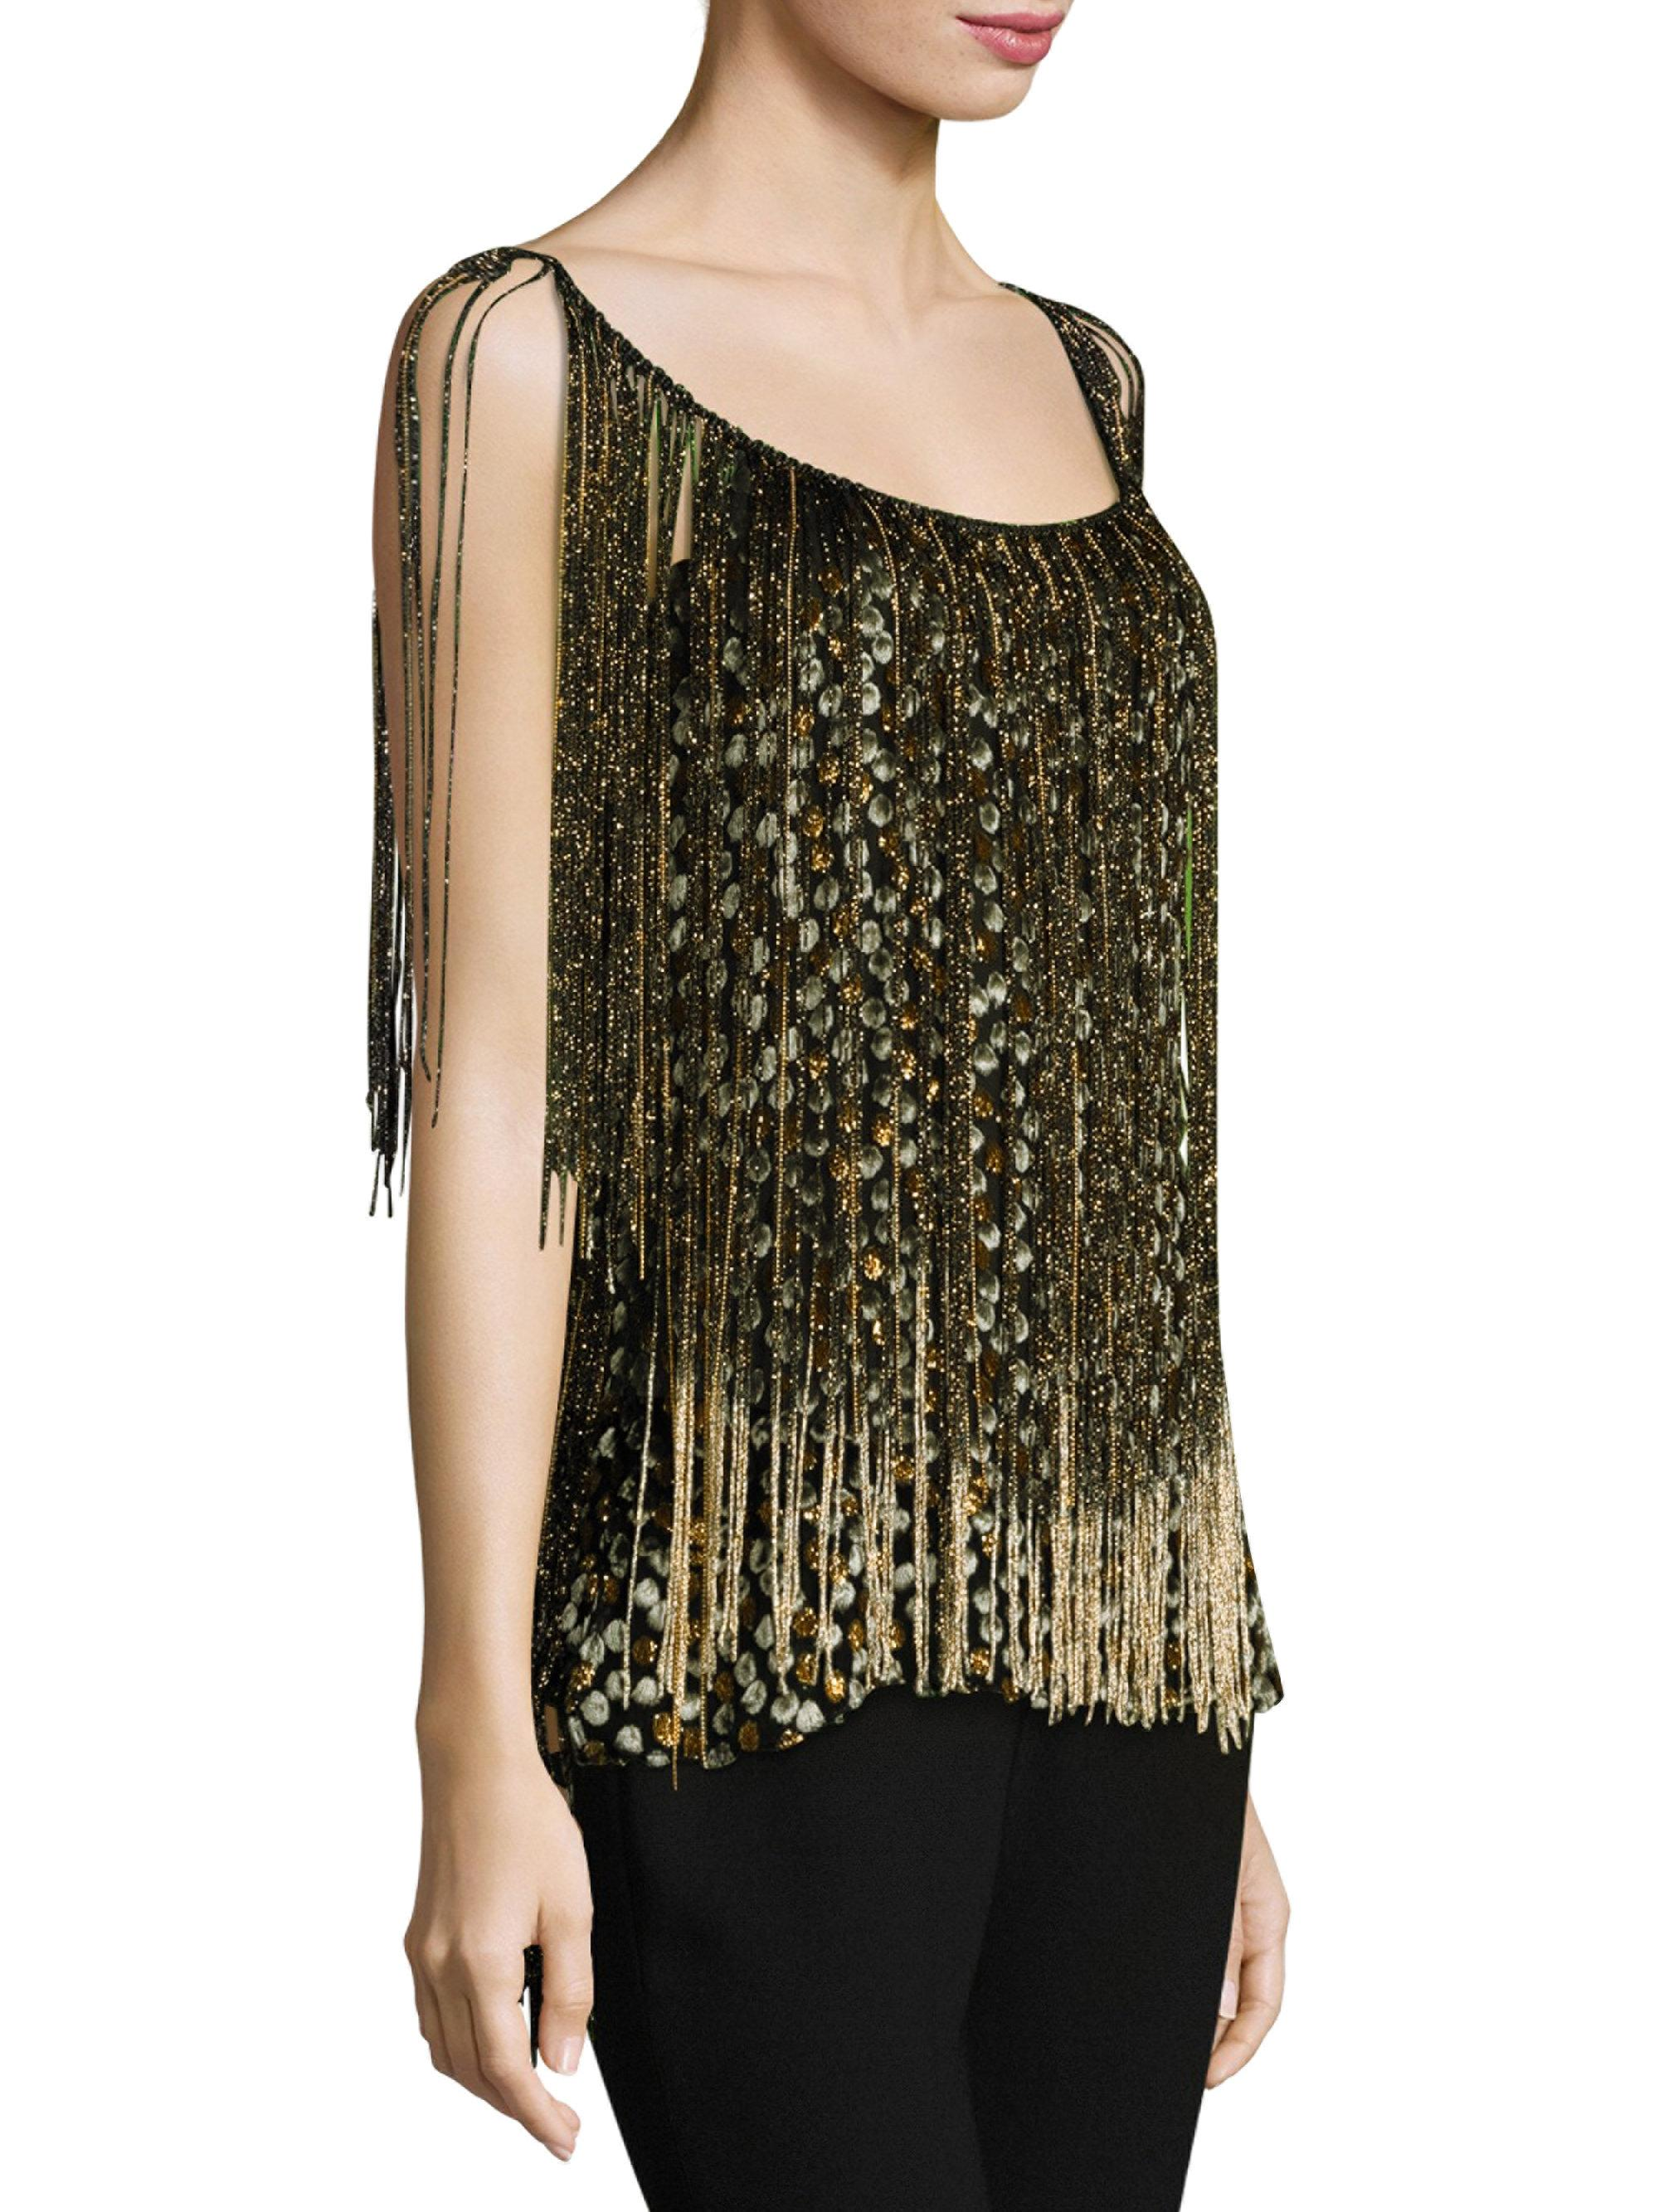 Elie Tahari Woman Jacobia Fringed Metallic Flocked Chiffon Top Gold Size M Elie Tahari Cheap Sale Shop For Outlet Websites Prices For Sale Peetn